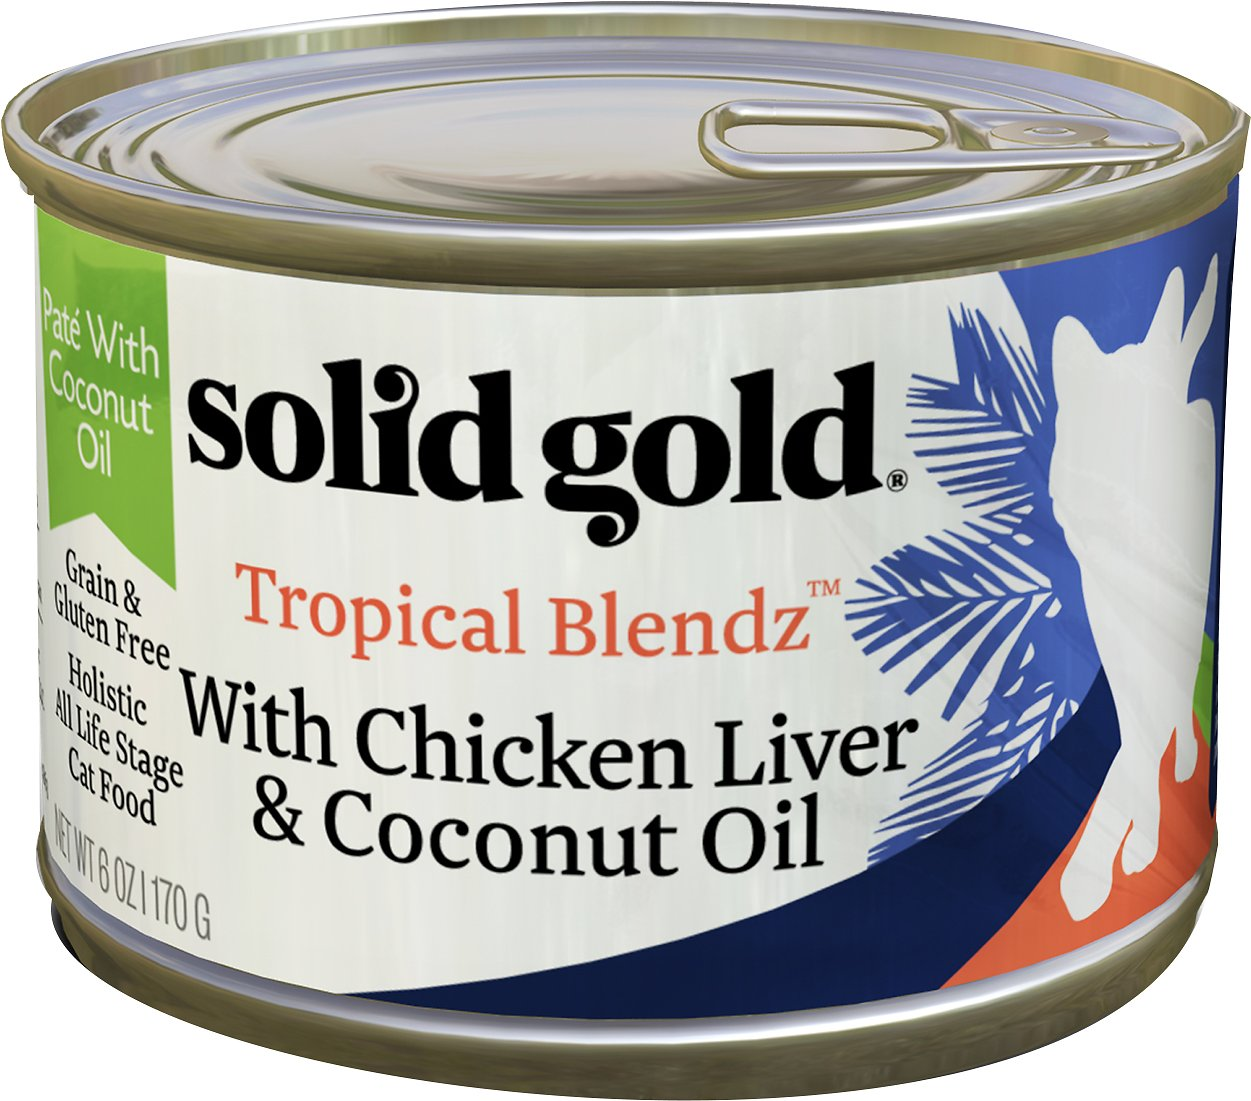 Solid Gold Tropical Blendz with Chicken Liver & Coconut Oil Pate Grain-Free Canned Cat Food, 3-oz